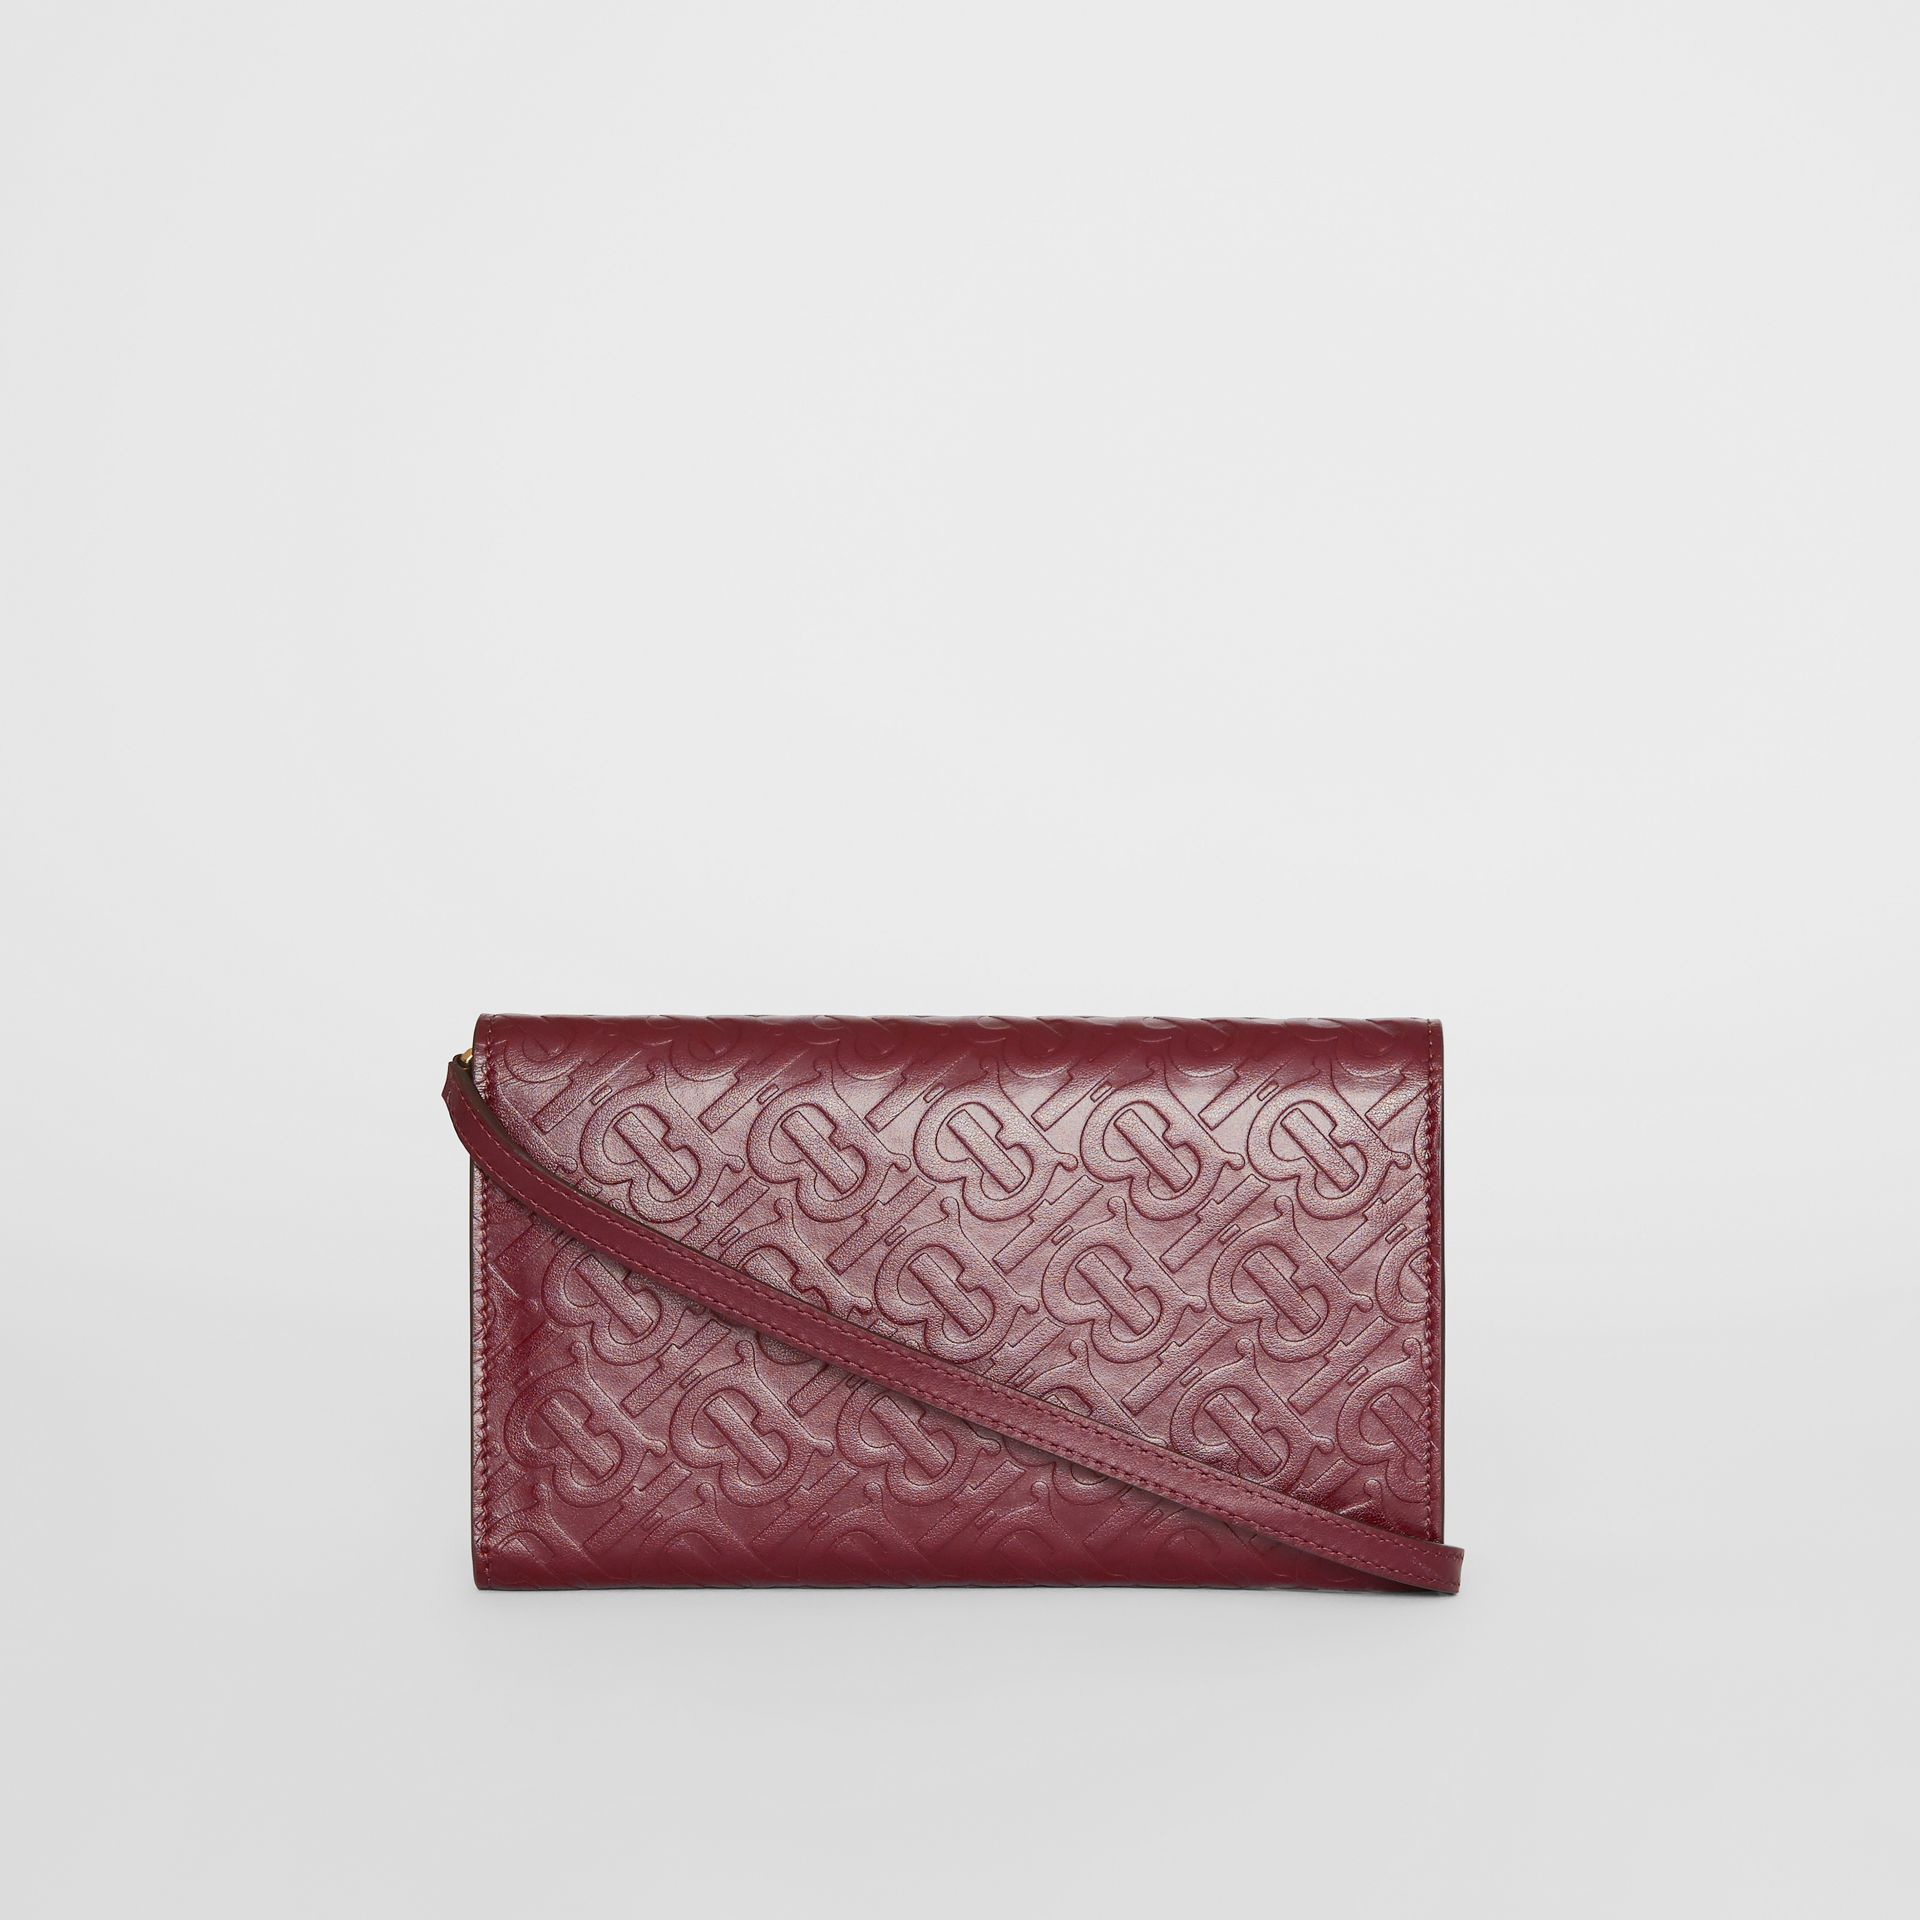 Monogram Leather Wallet with Detachable Strap in Oxblood - Women | Burberry Singapore - gallery image 7